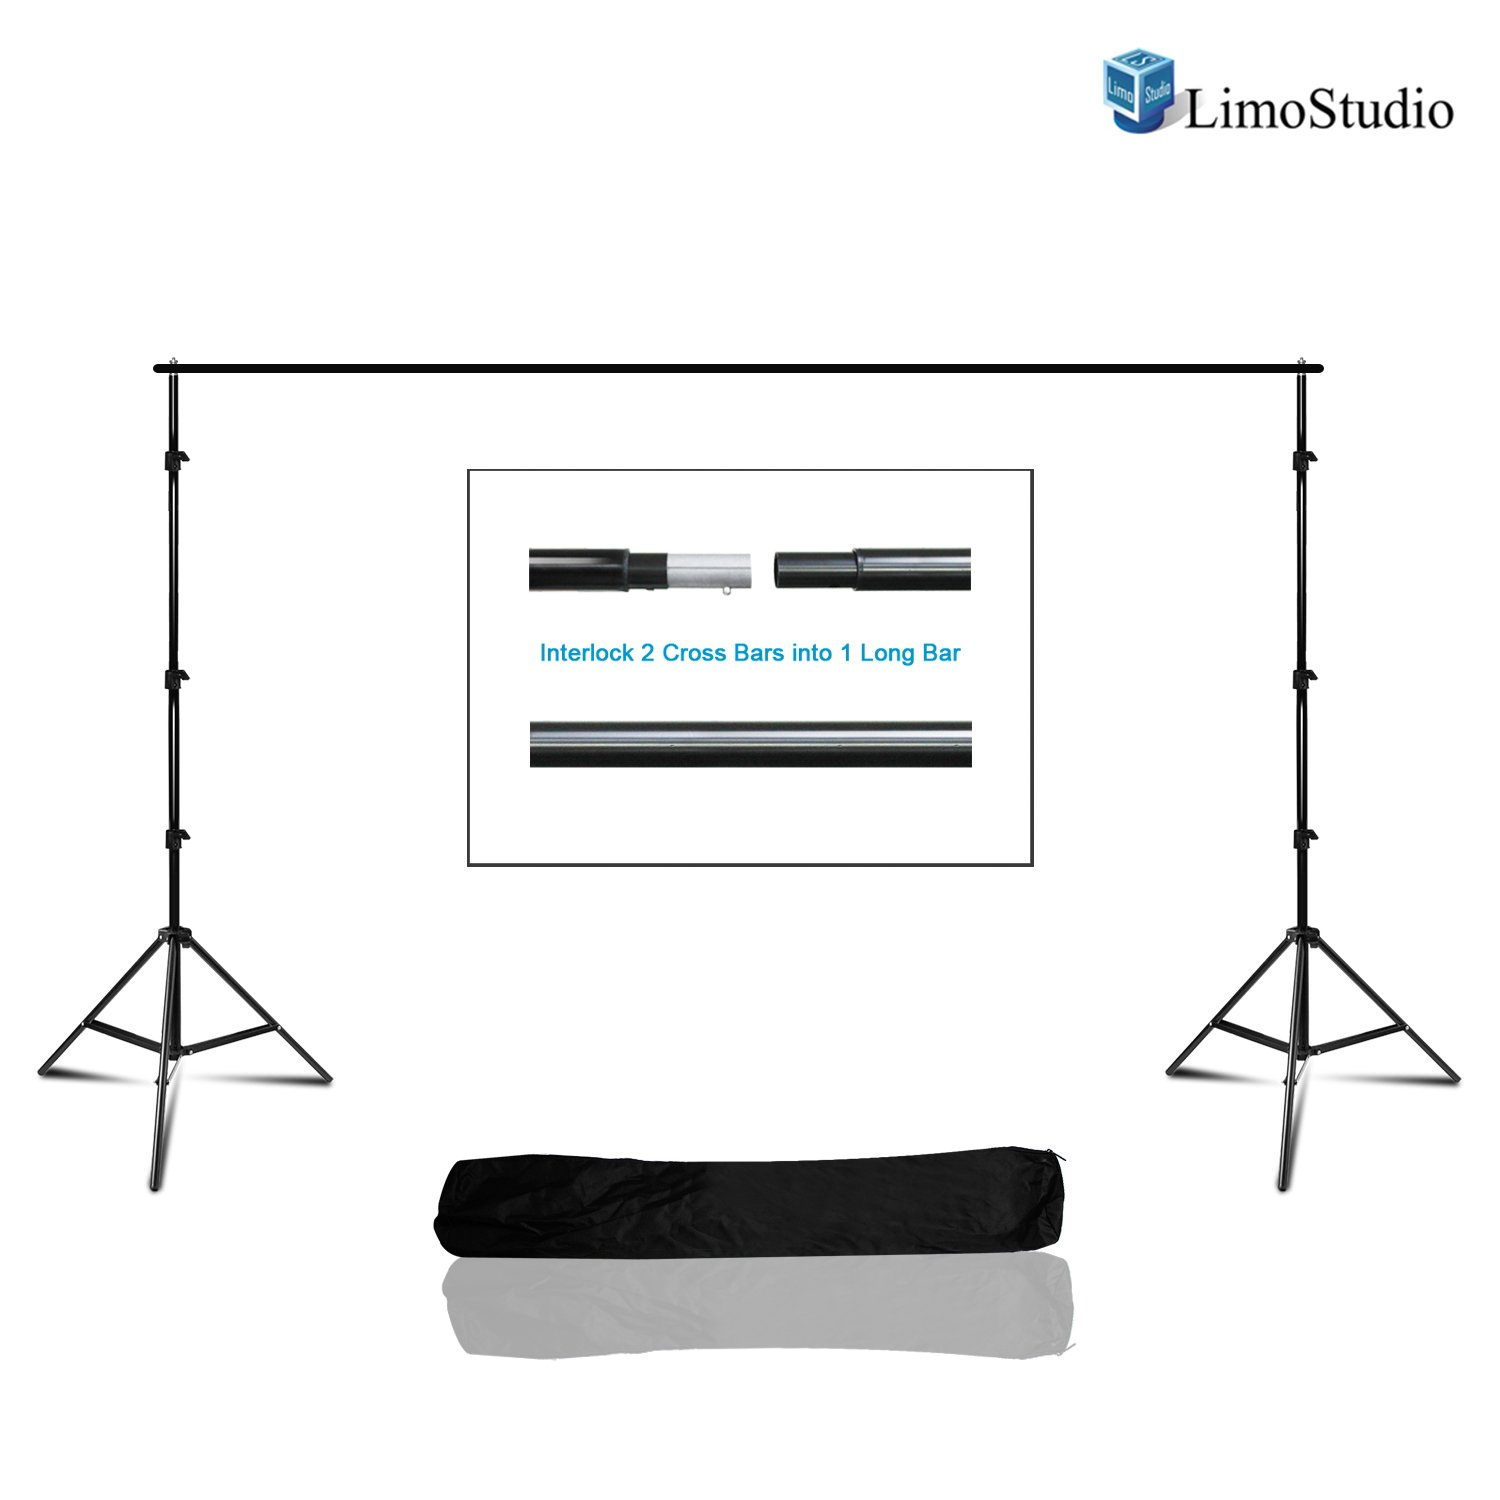 LimoStudio Photo Studio 10 x 7.5 Ft. Adjustable Background Stand Backdrop Support System Kit with Carry Bag, AGG2378